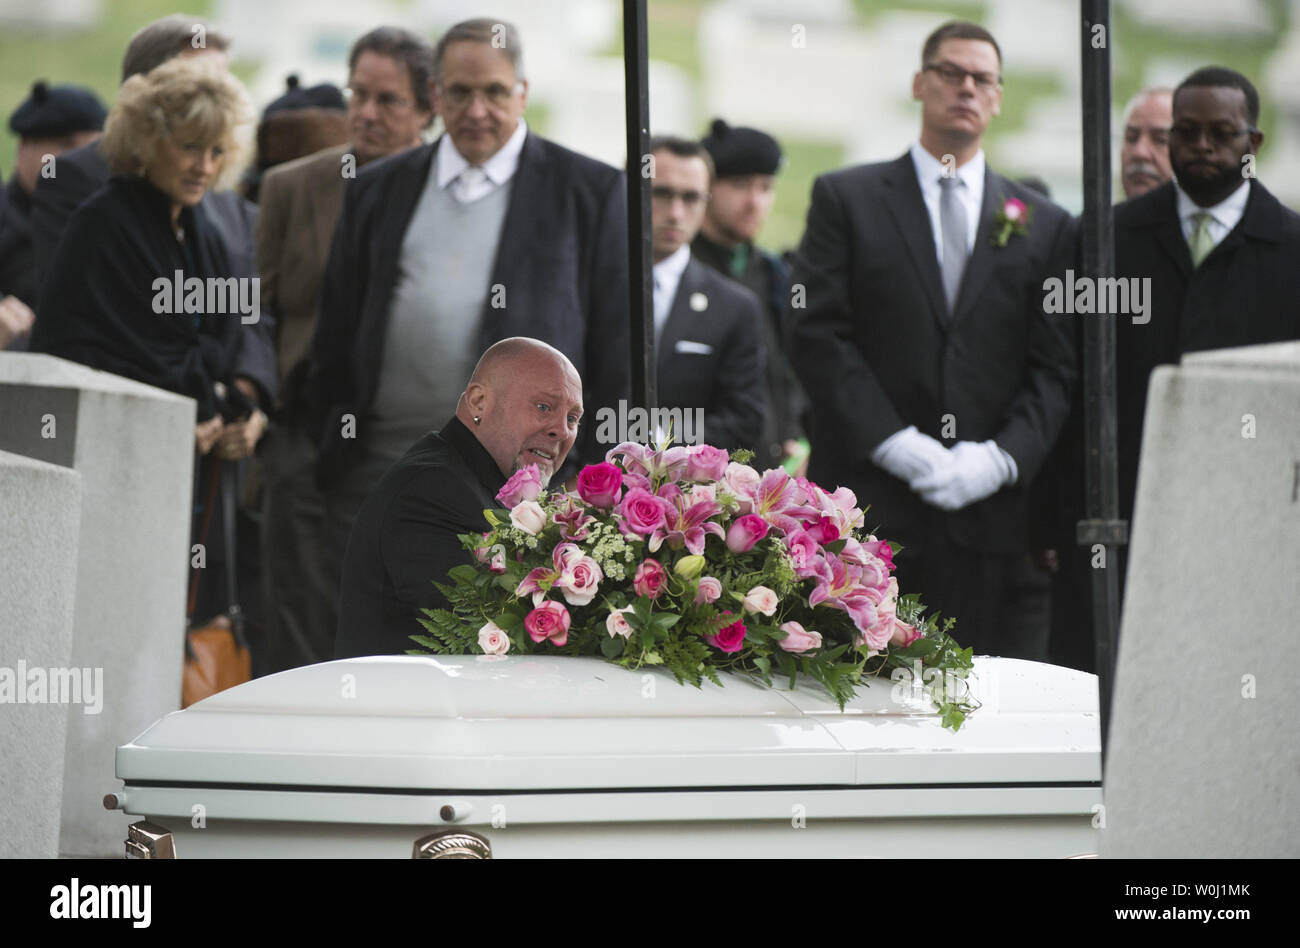 Conor FitzSimons, mourns at the grave of his grandmother actress Maureen O'Hara during her funeral, as she is buried to her husband Ret. U.S. Air Force Brig. Gen. Charles Blair, at Arlington National Cemetery in Arlington, Virginia on November 9, 2015. O'Hara, 95, starred in 'Miracle on 34th Street' and other classic hollywood films. Photo by Kevin Dietsch/UPI. - Stock Image